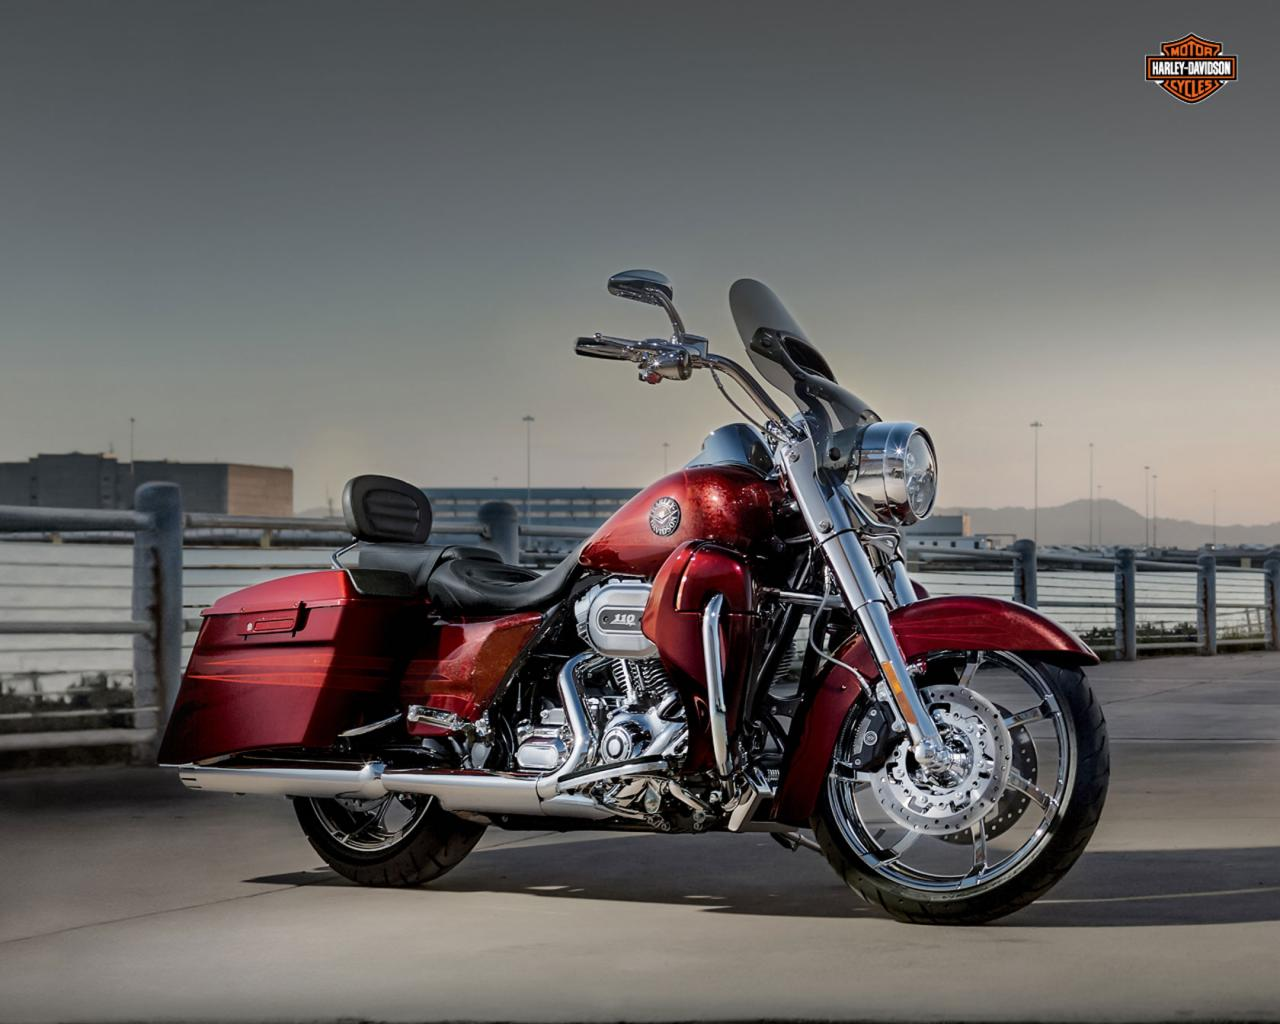 2013 harley davidson cvo road king 110th anniversary moto zombdrive com. Black Bedroom Furniture Sets. Home Design Ideas